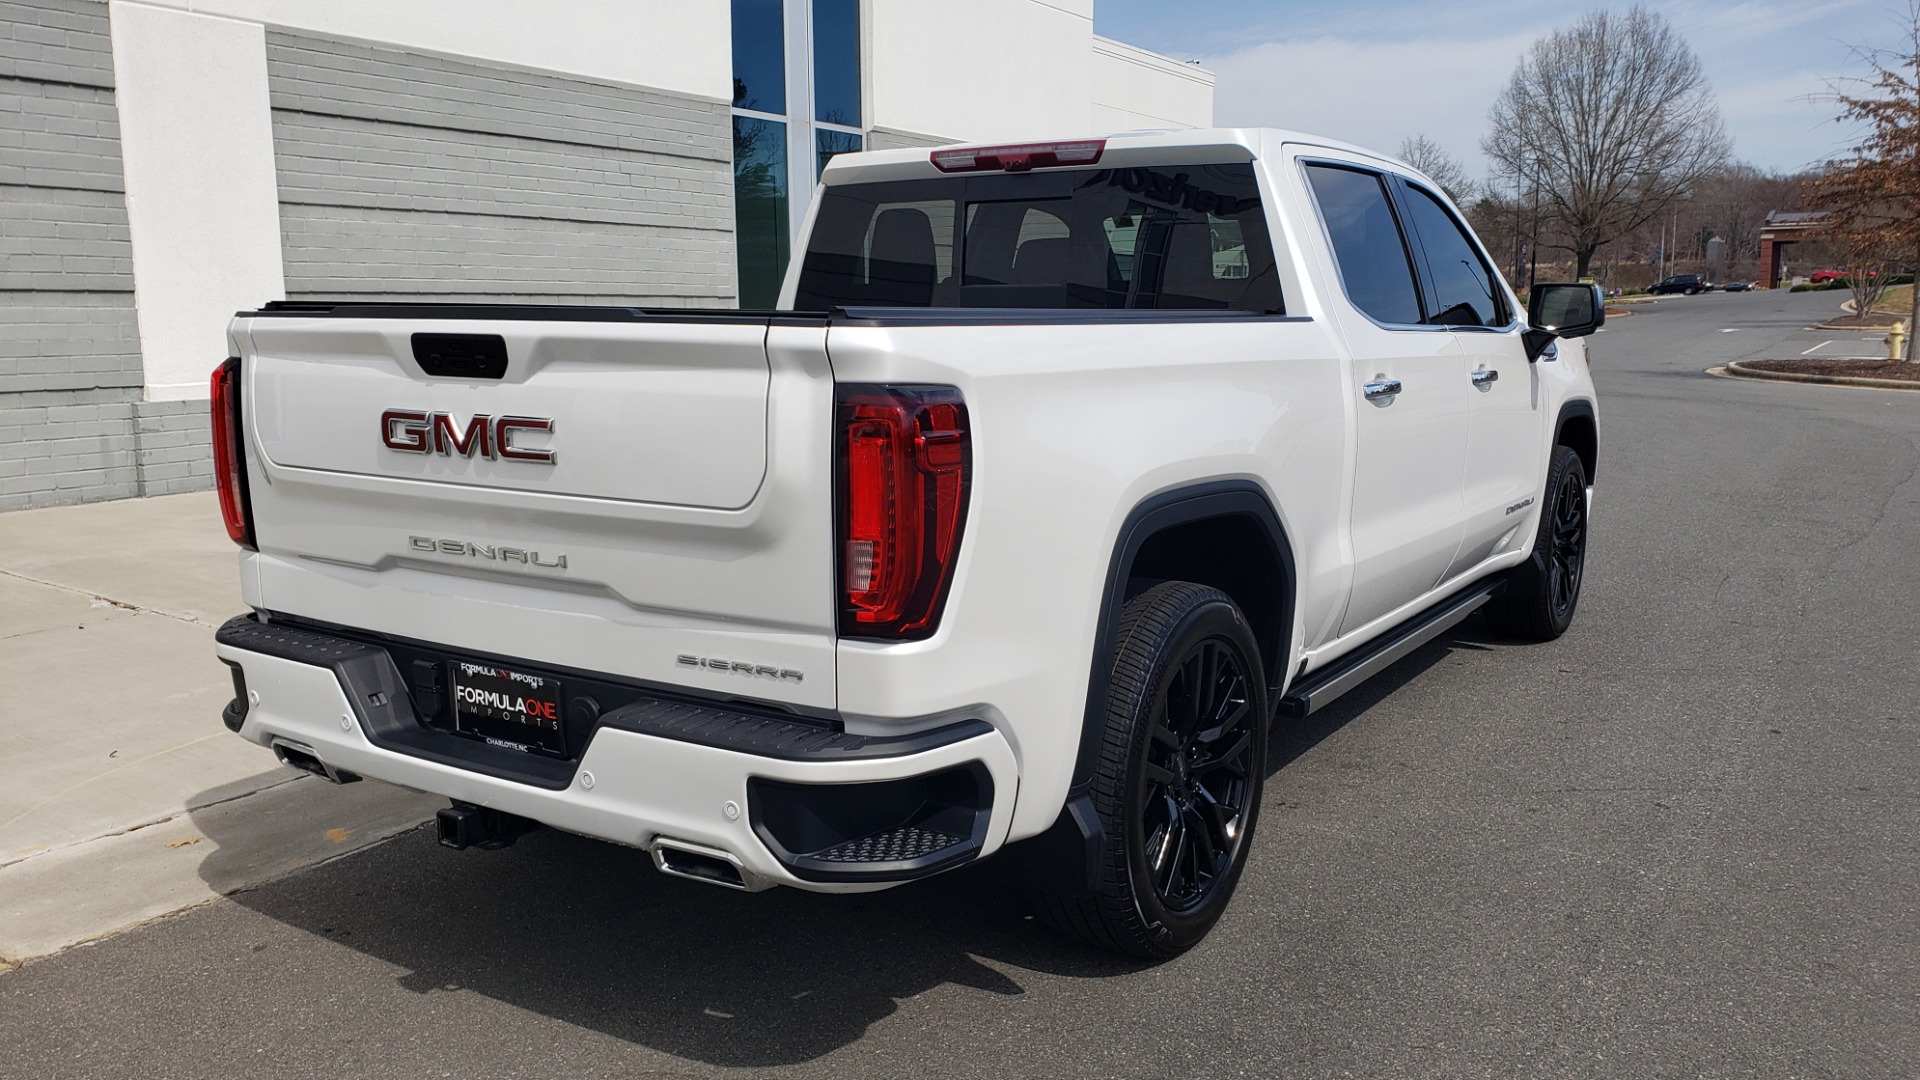 Used 2020 GMC SIERRA 1500 DENALI 4X4 CREWCAB 6.2L V8 / TECH / NAV / SUNROOF / DRVR ALERT II for sale Sold at Formula Imports in Charlotte NC 28227 8